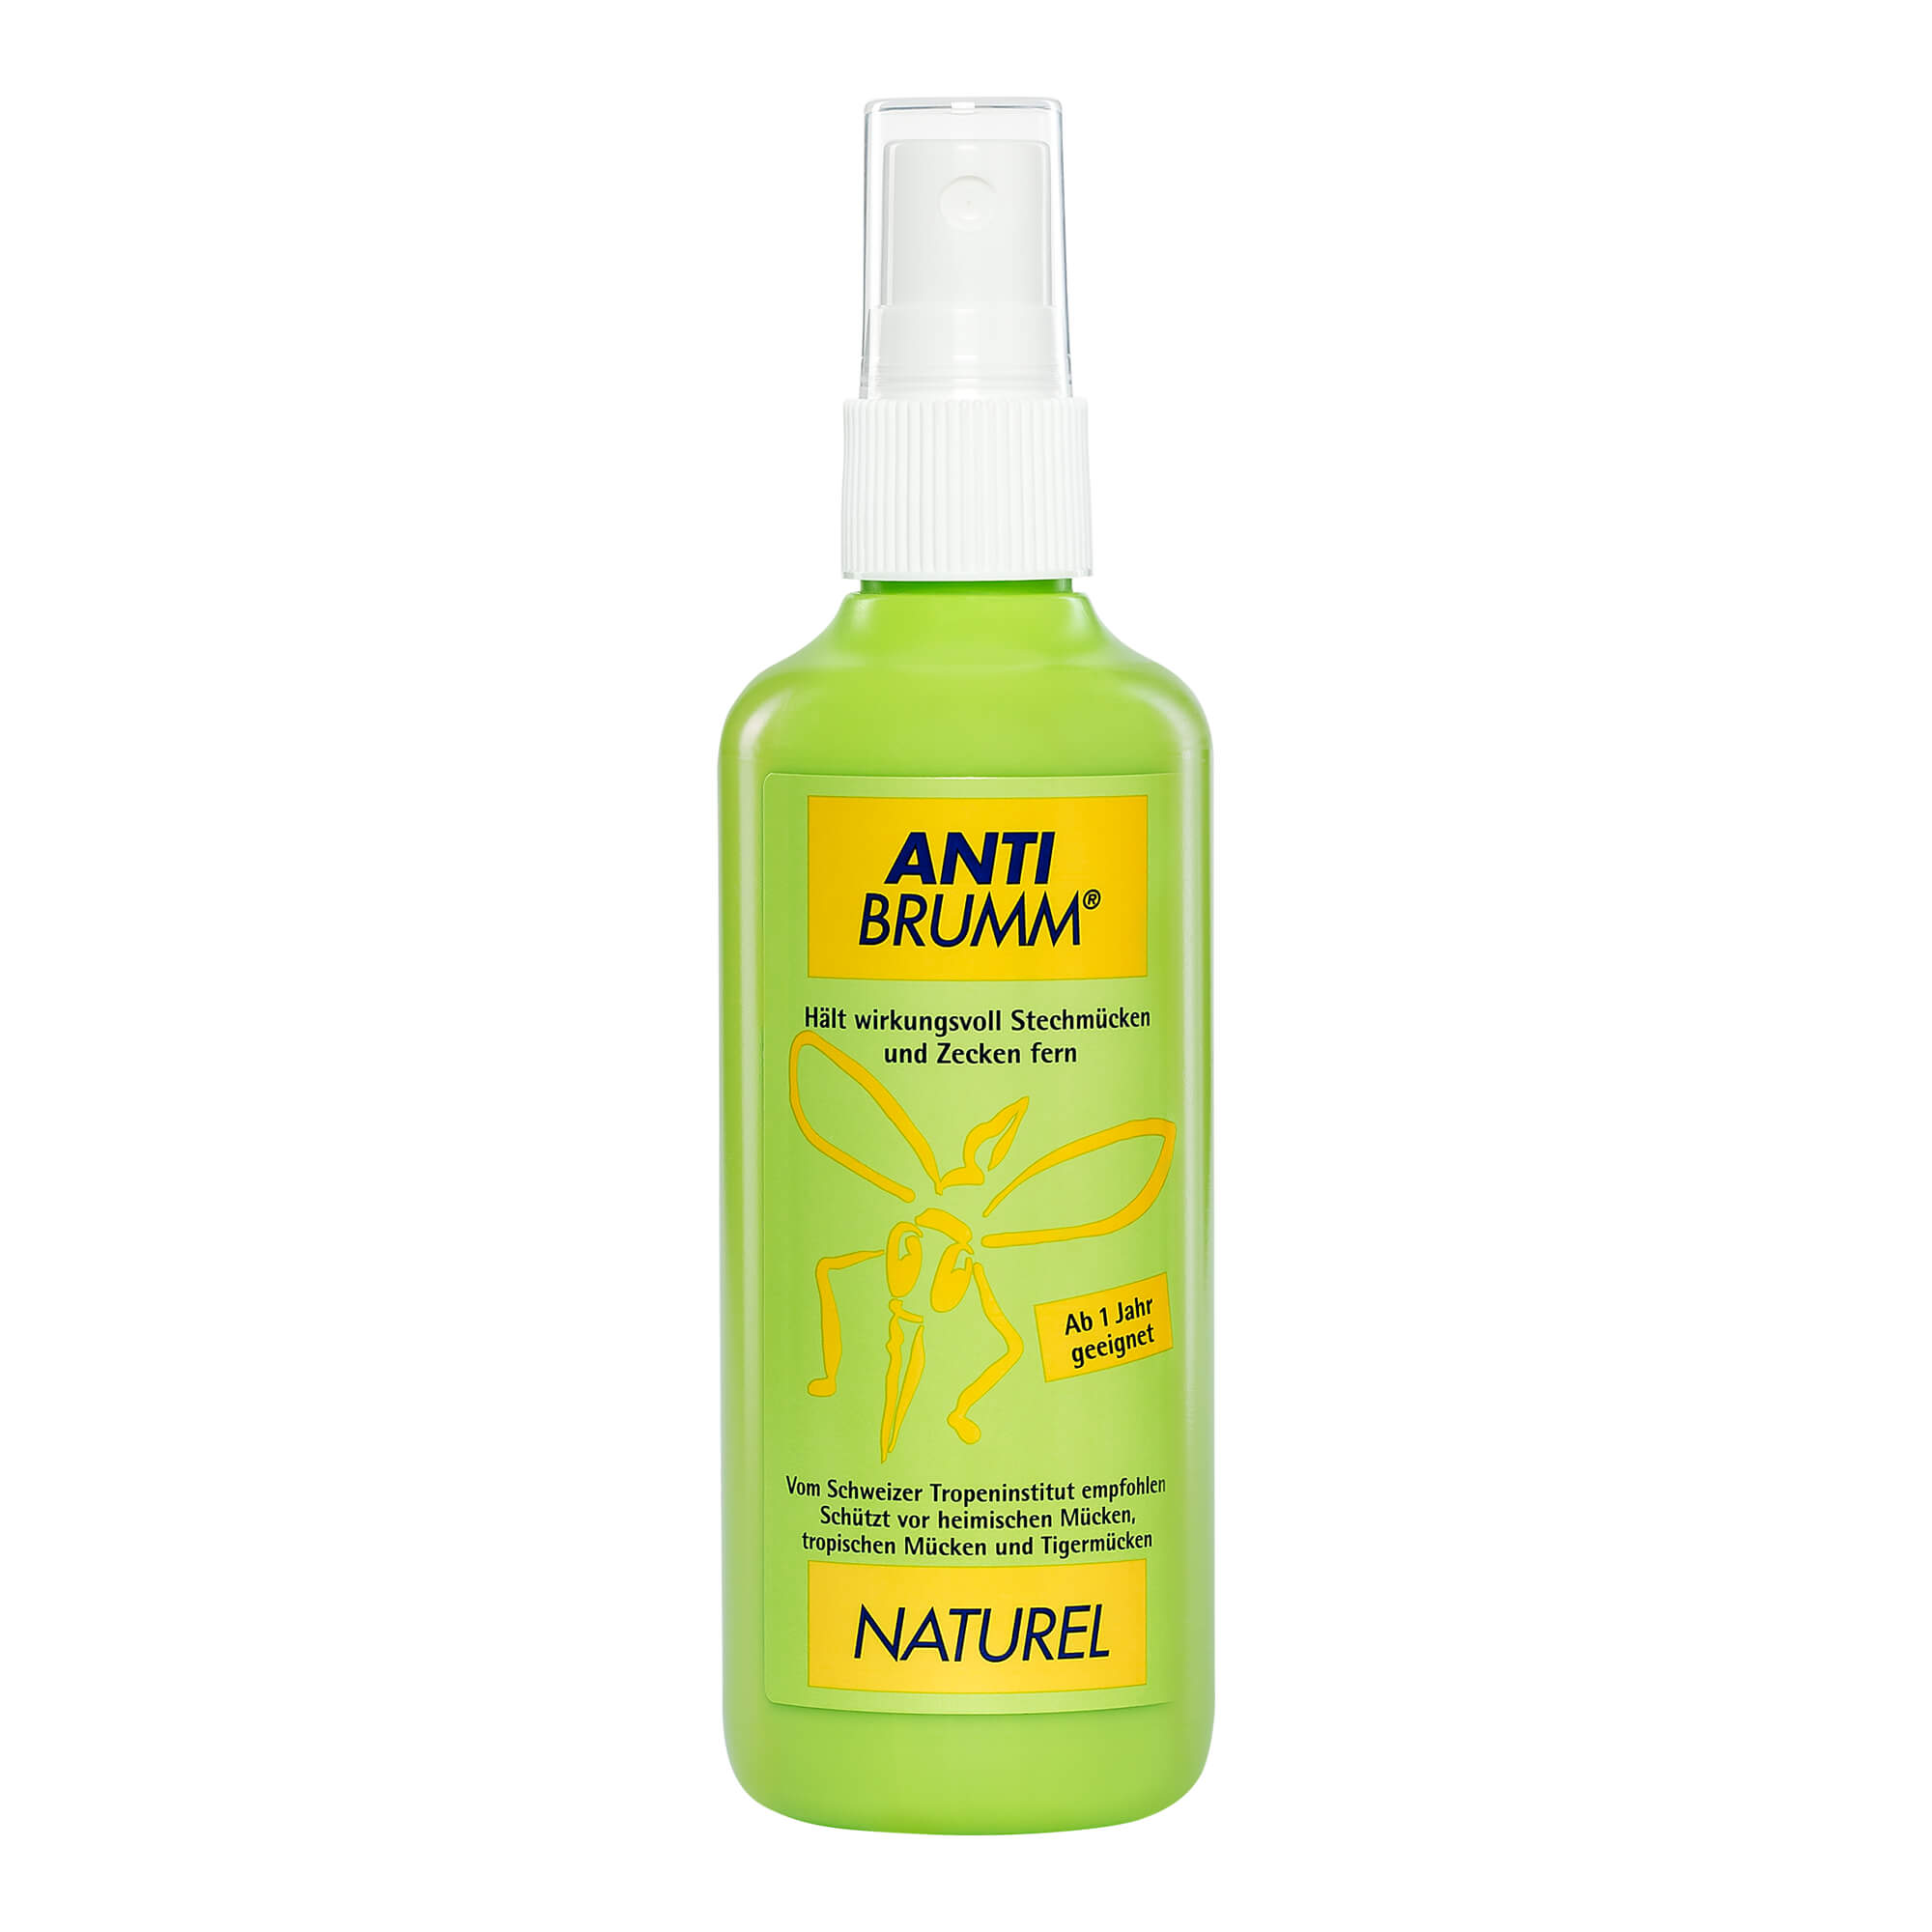 Anti Brumm Naturel Pumpspray